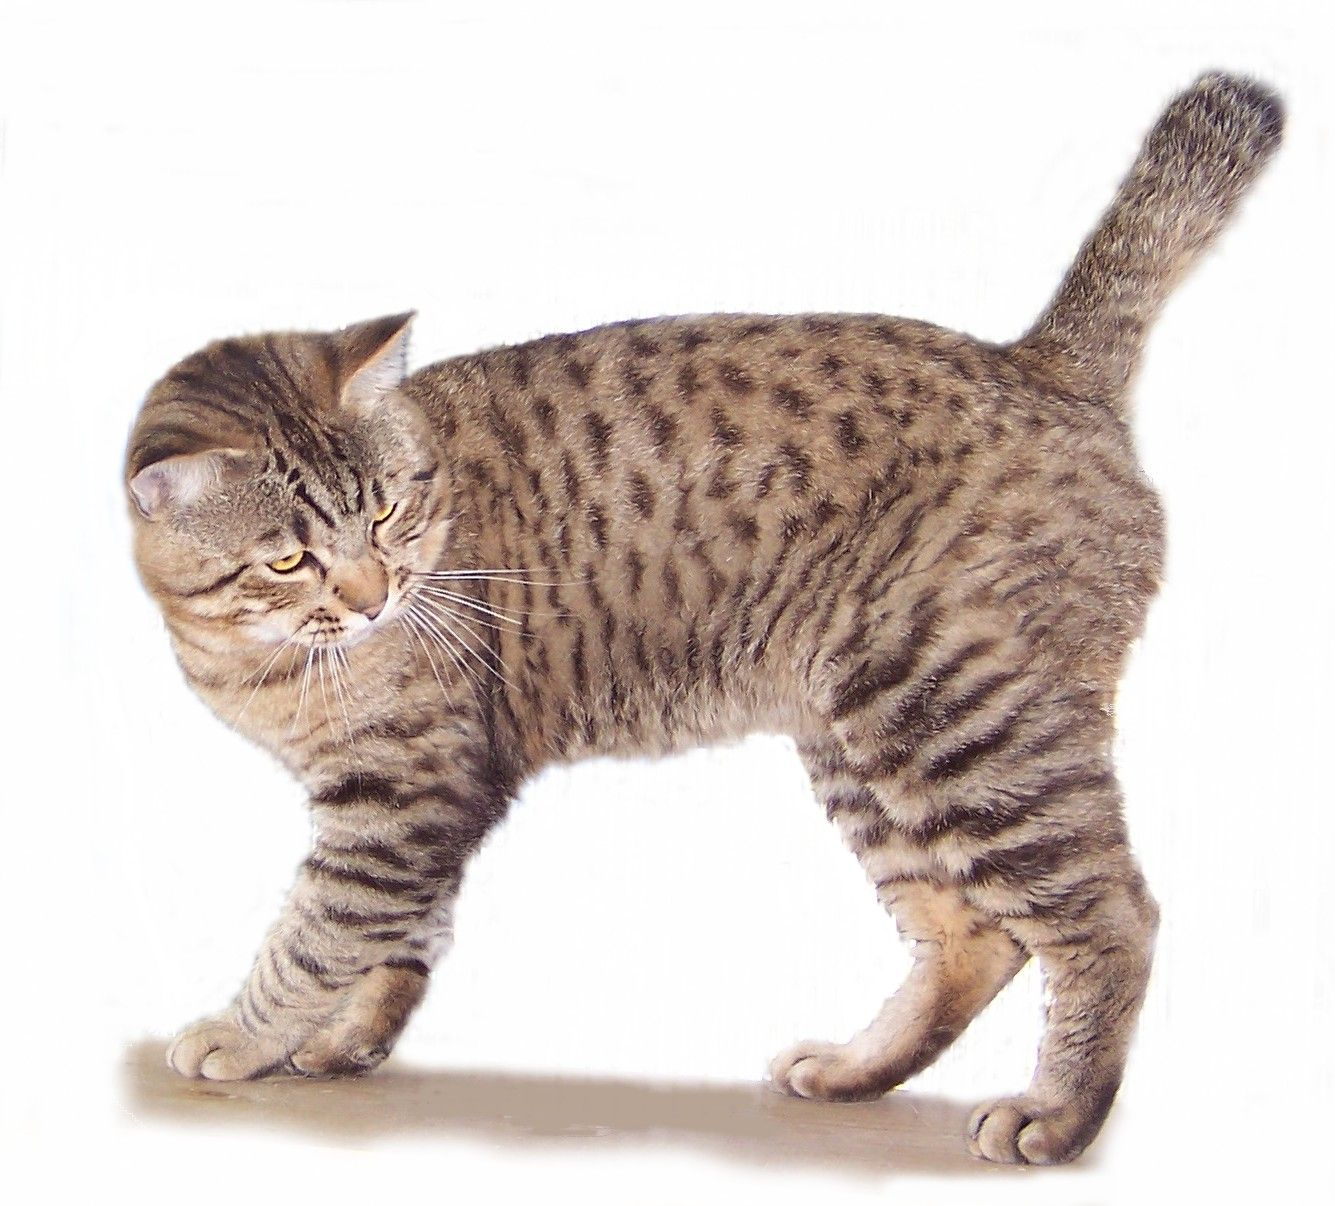 American Bobtail Cat The American Bobtail Cat Is An Uncommon Breed Of Domestic Cat Which Was Developed In The Late American Bobtail Cat Bobtail Cat Cat Breeds